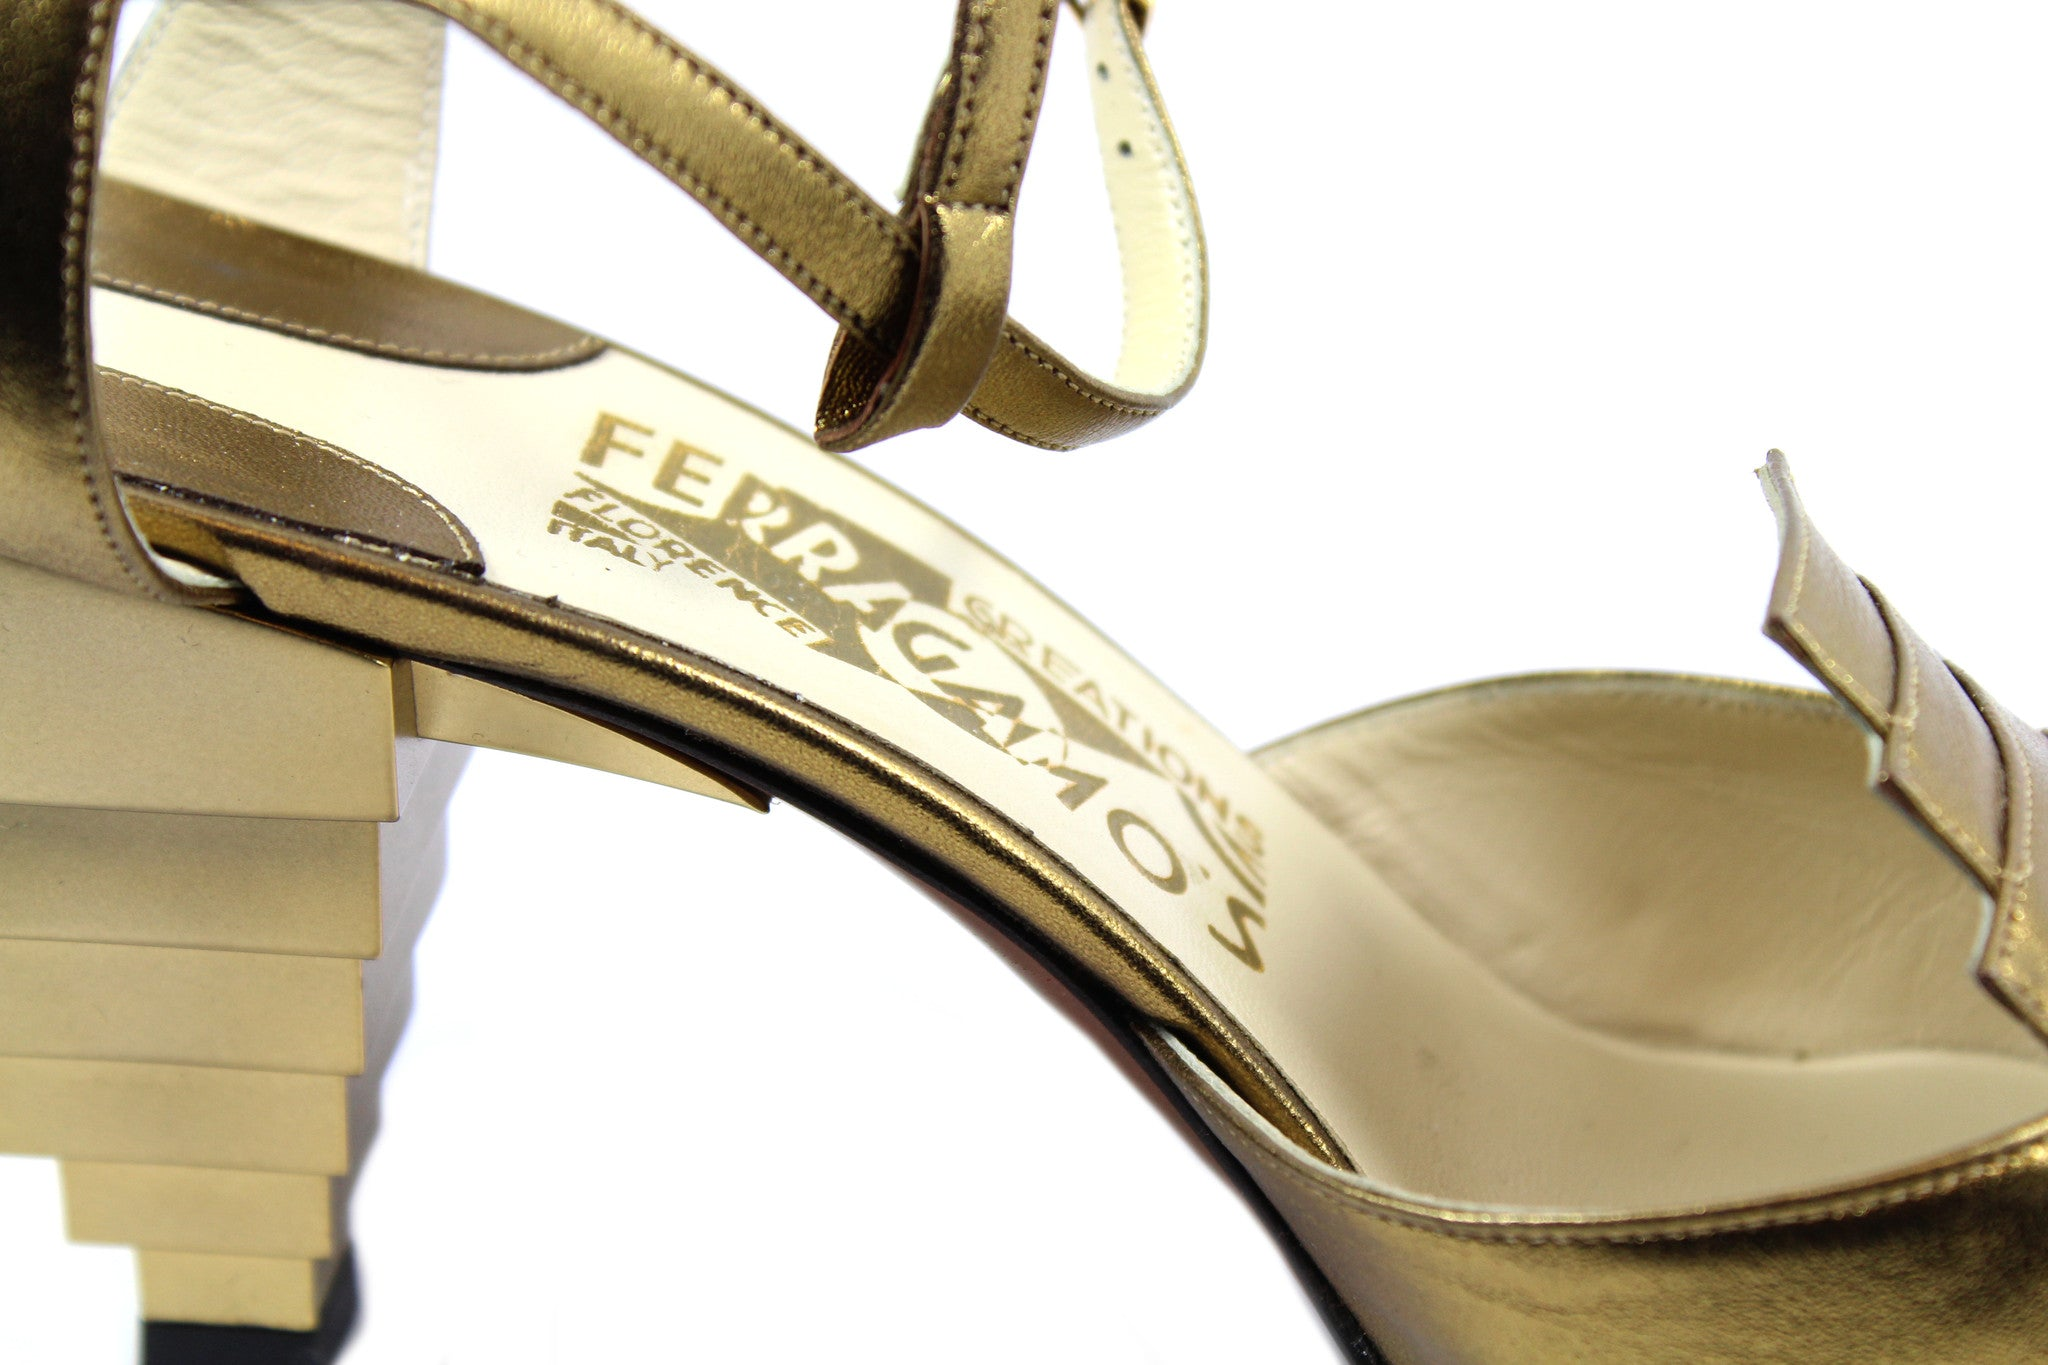 Salvatore Ferragamo 1930s Gold Pyramid Sandals (Size 6) - Encore Consignment - 10